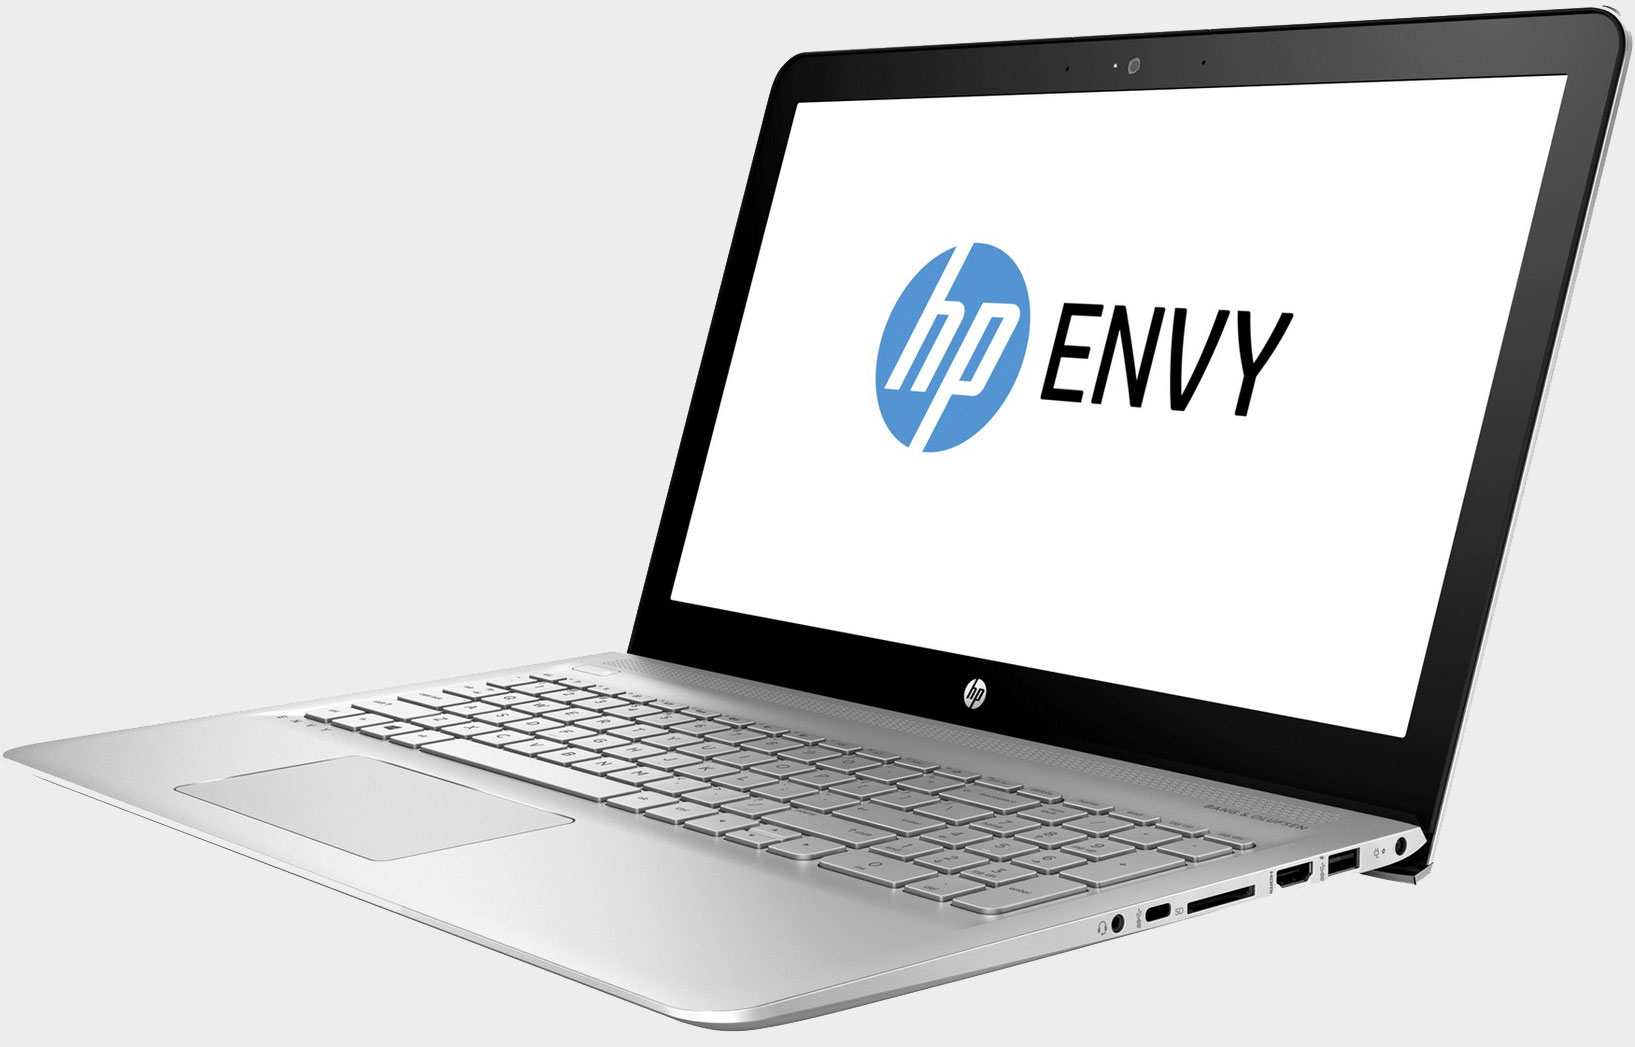 HP recalls 78,500 additional laptop batteries over 'fire and